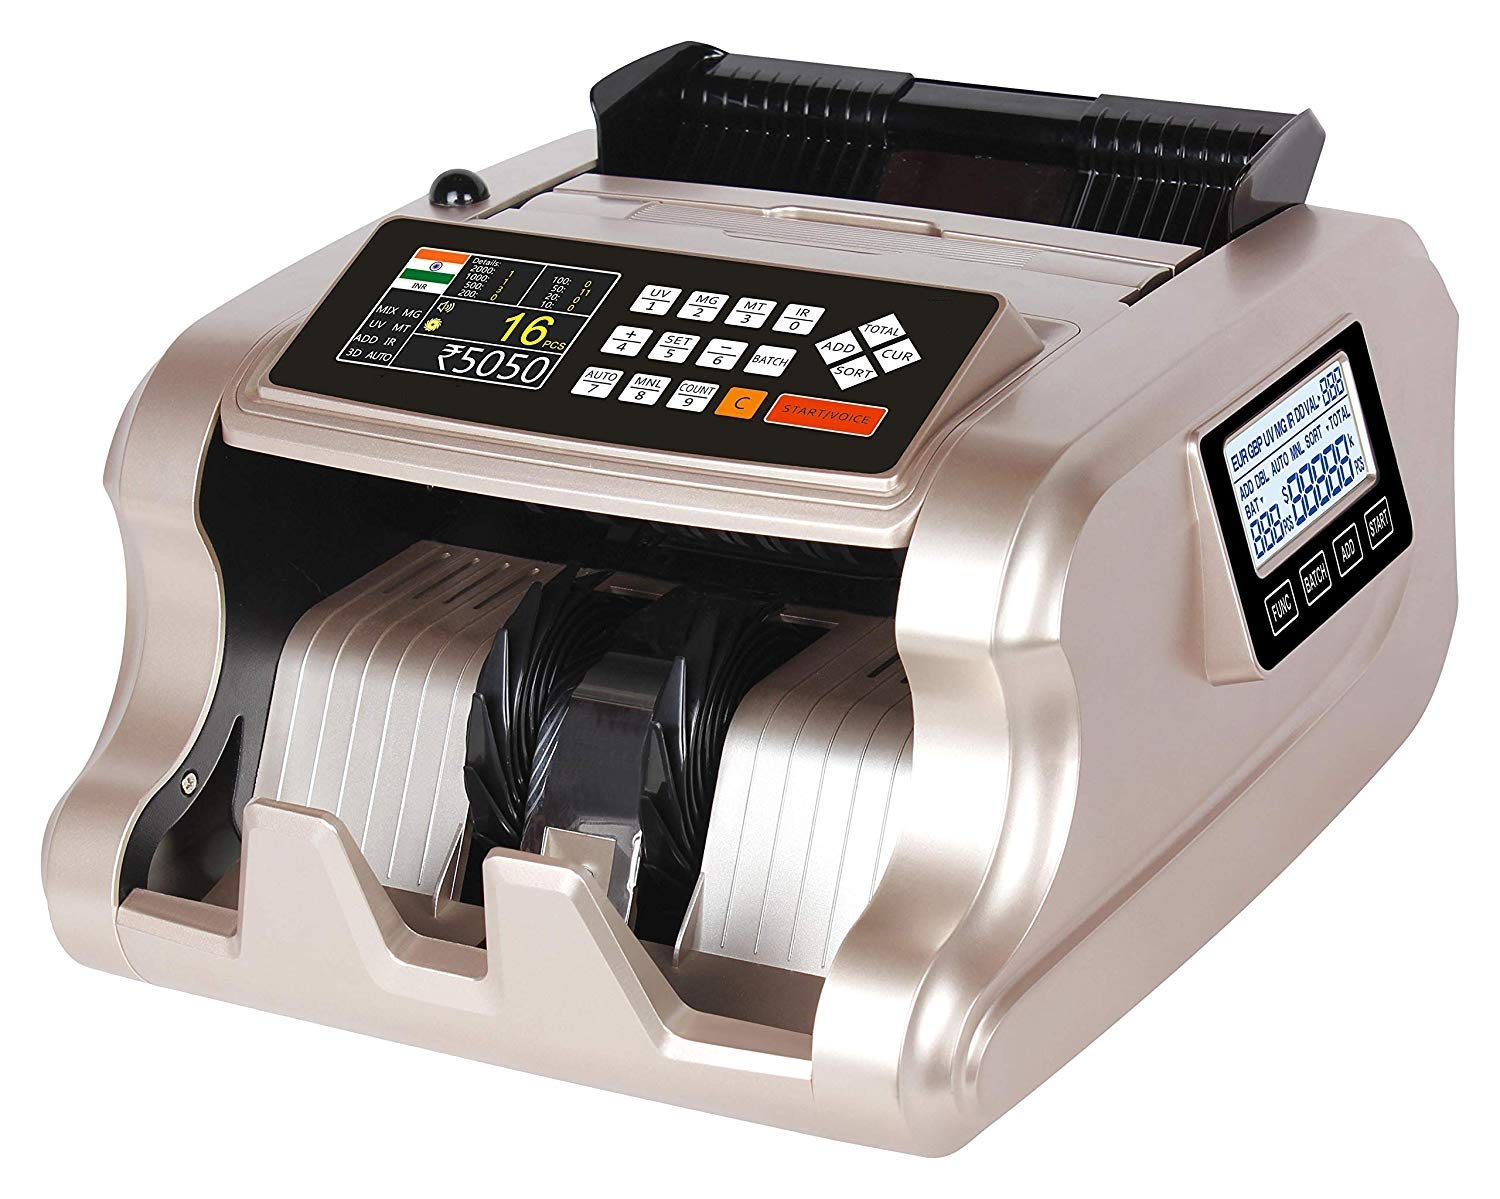 Metis Mix note counting machine